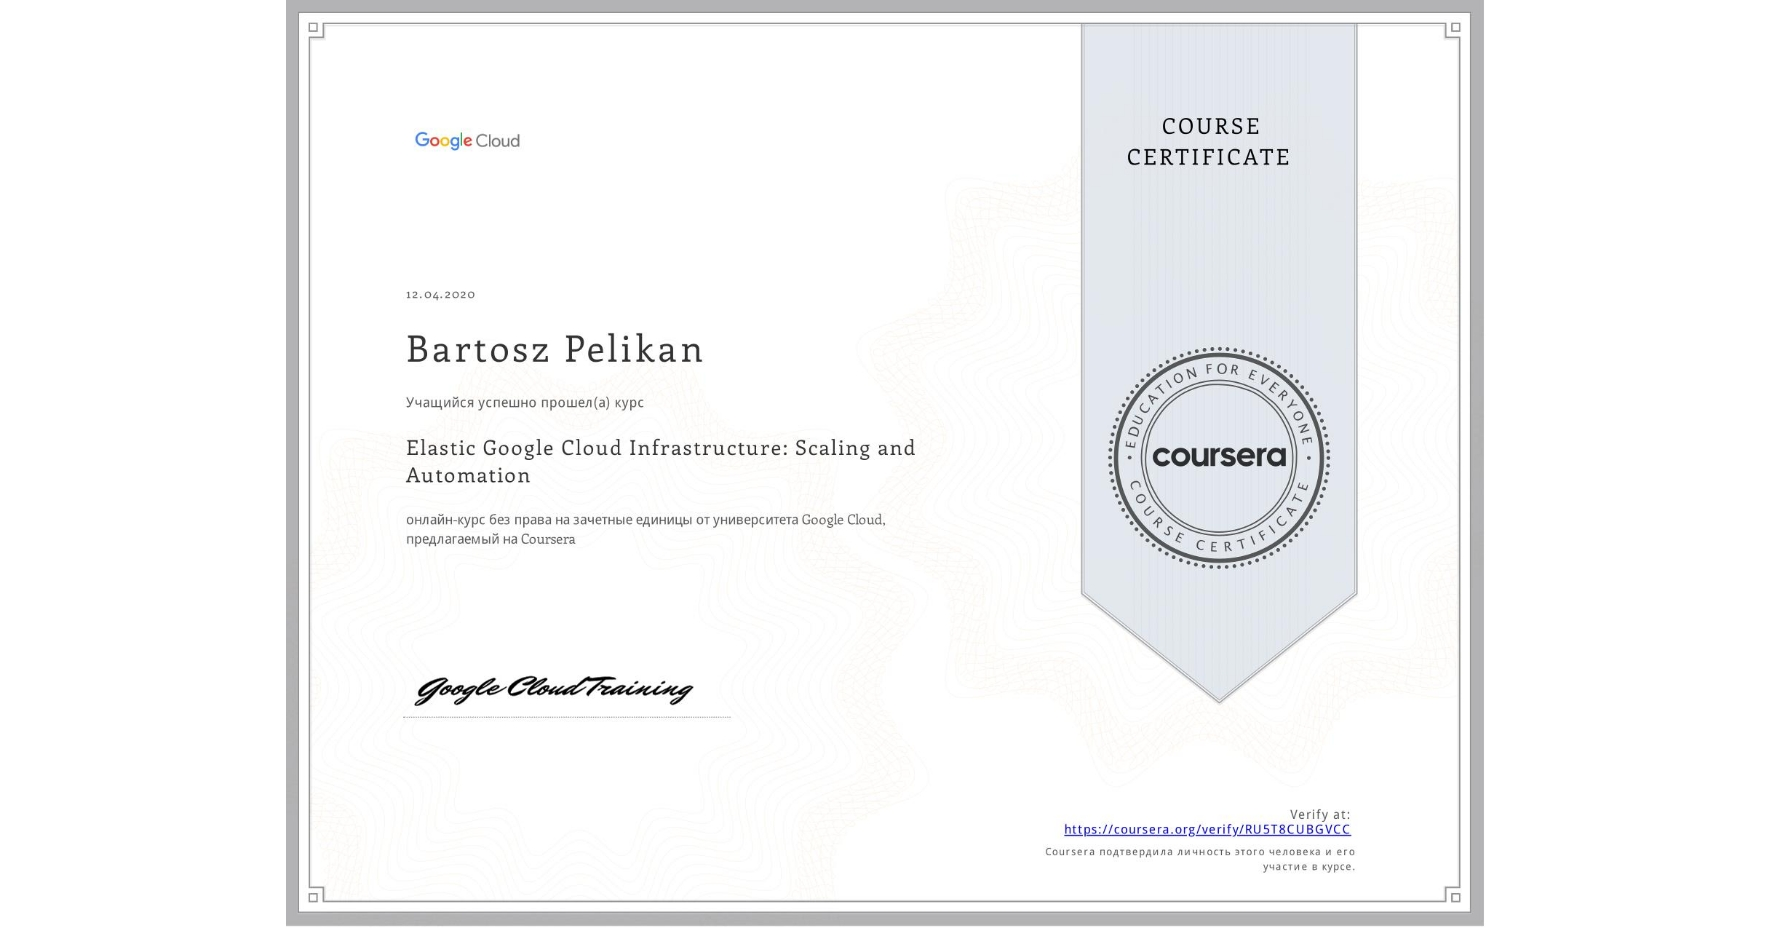 View certificate for Bartosz Pelikan, Elastic Google Cloud Infrastructure: Scaling and Automation, an online non-credit course authorized by Google Cloud and offered through Coursera